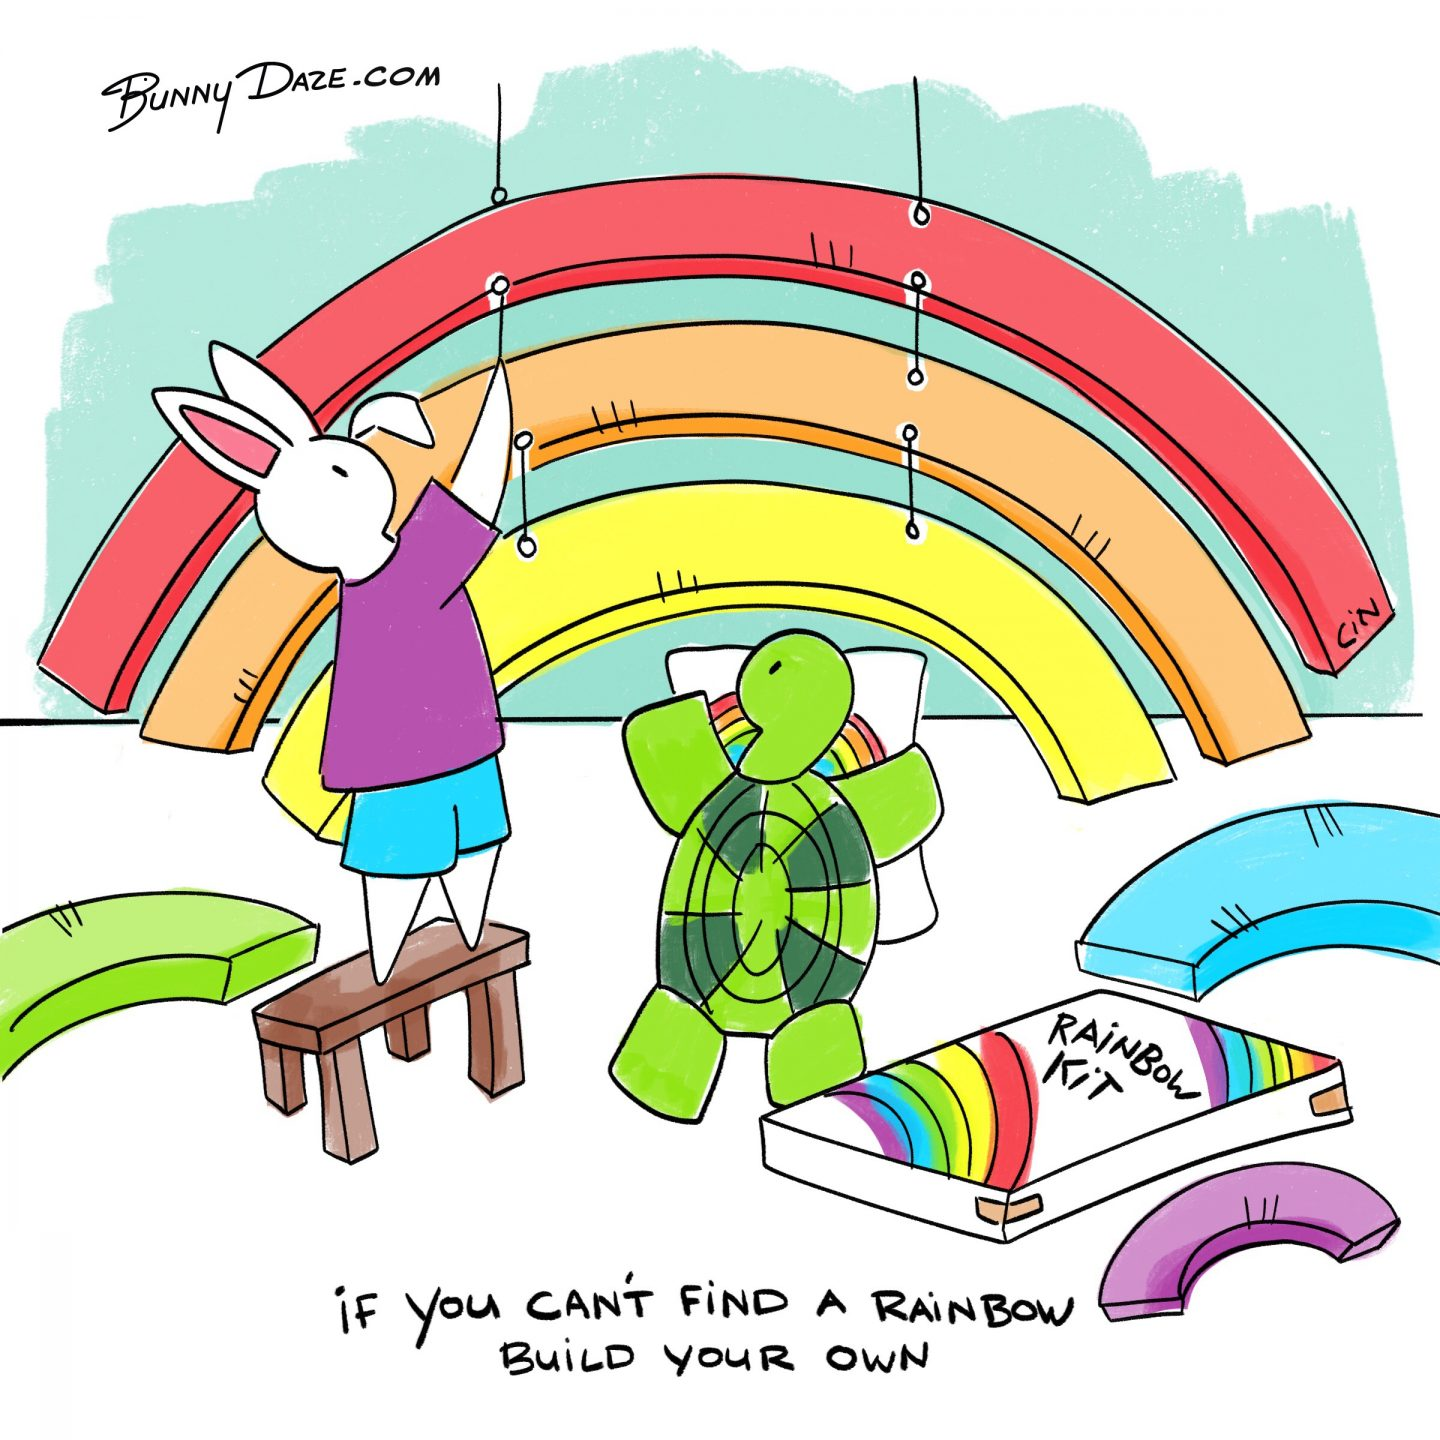 If you can t find a rainbow build your own bunnydaze for Finding a builder